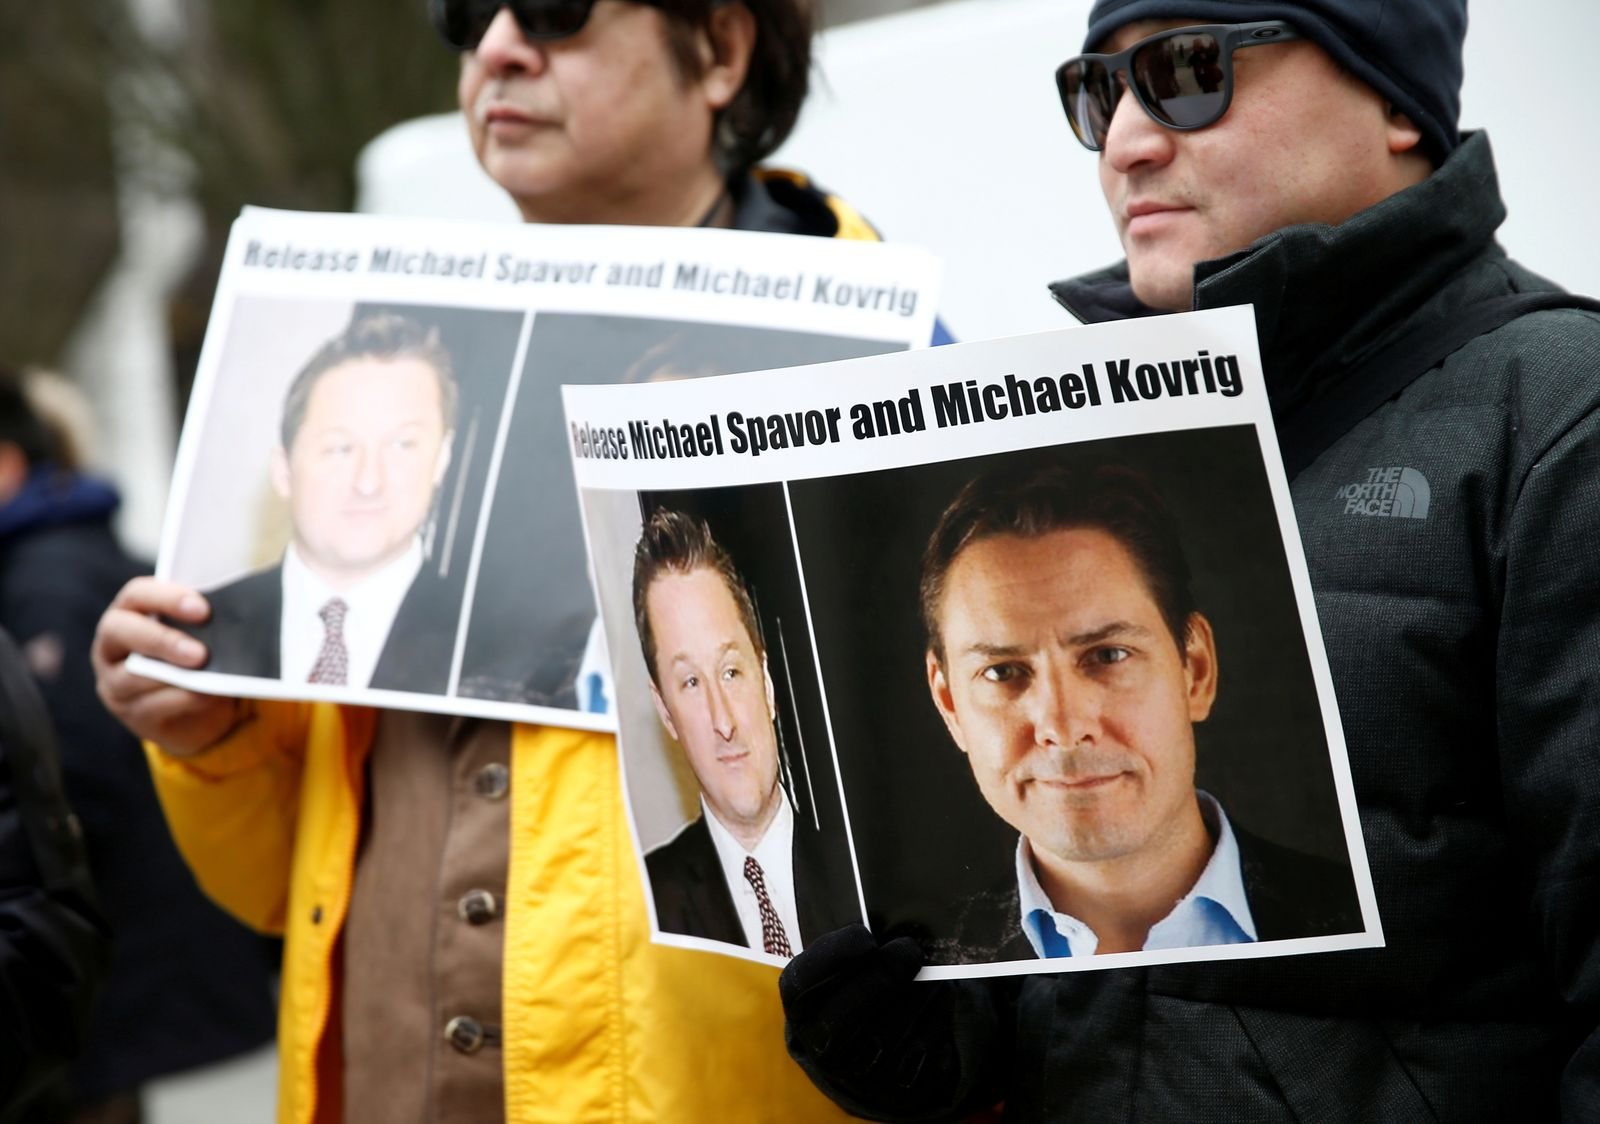 FILE PHOTO: People hold signs calling for China to release Canadian detainees Spavor and Kovrig during an extradition hearing for Huawei Technologies Chief Financial Officer Meng Wanzhou at the B.C. Supreme Court in Vancouver